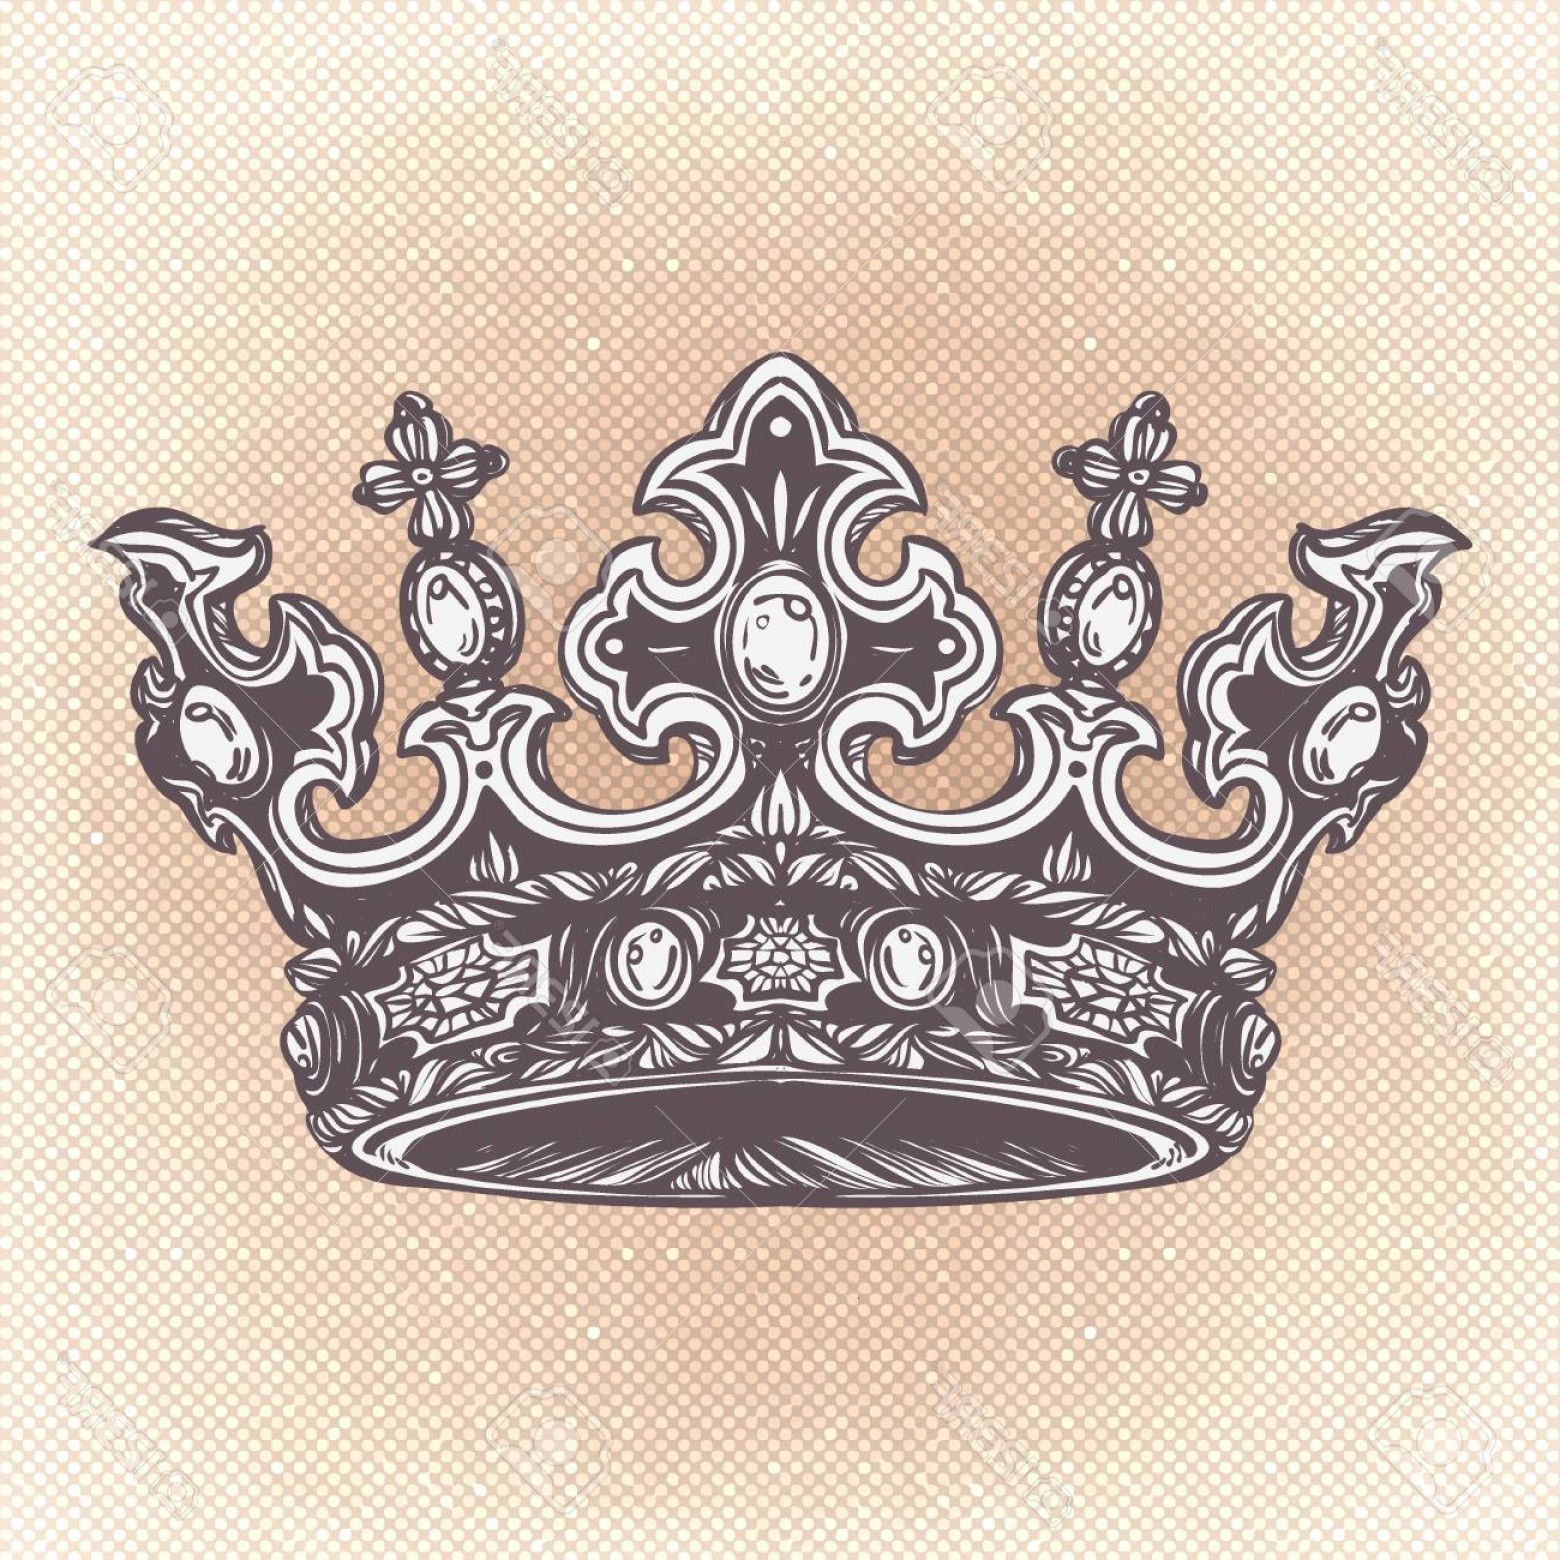 Detailed Tattoo Vector Images: Photostock Vector Filigree High Detailed Imperial Crown Element For Design Logo Emblem And Tattoo Vector Illustration